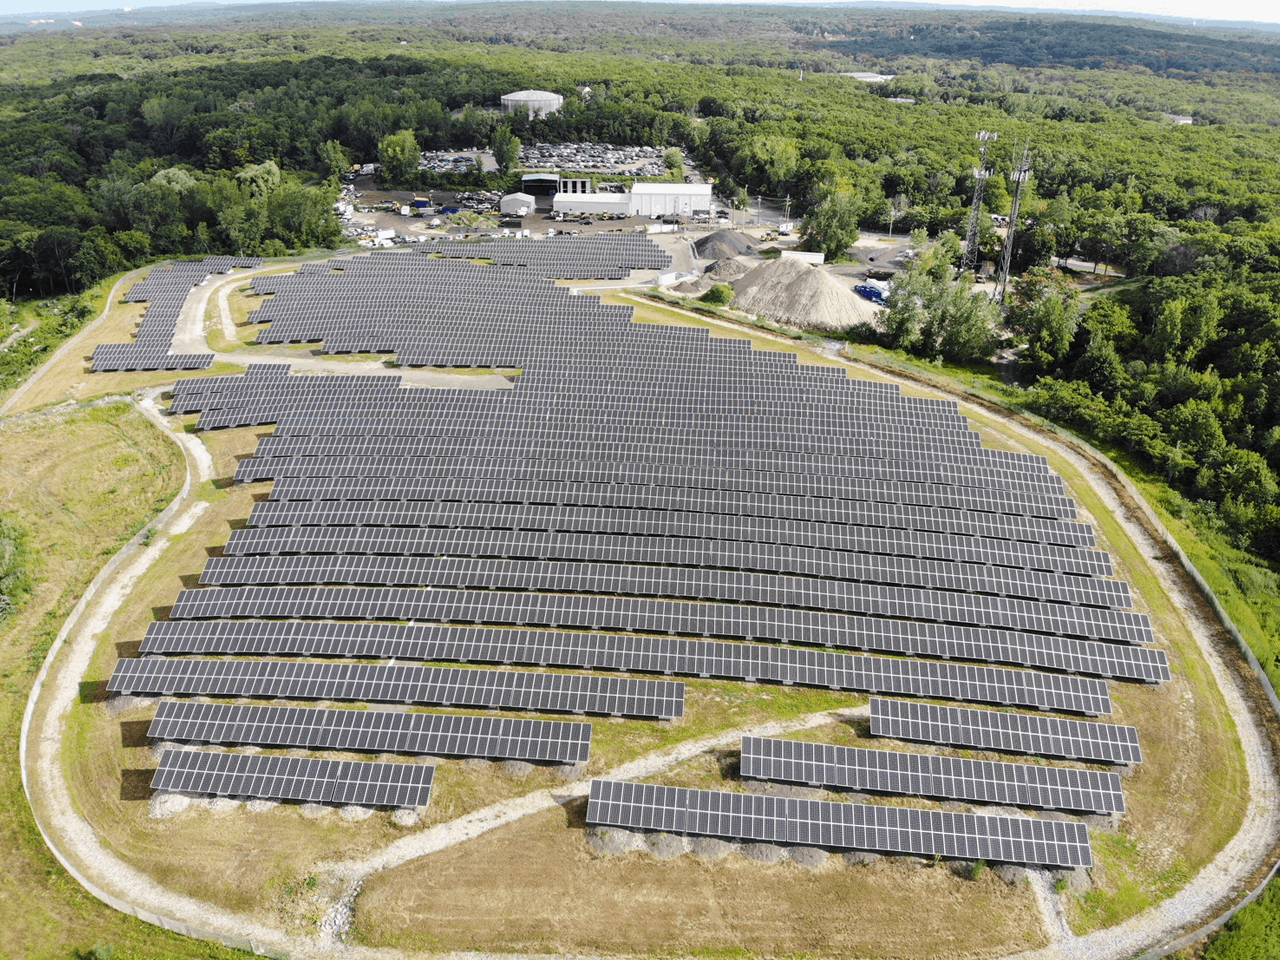 Captona Partners acquires 2.6 MW in North Providence, Rhode Island as part of growing presence in RI